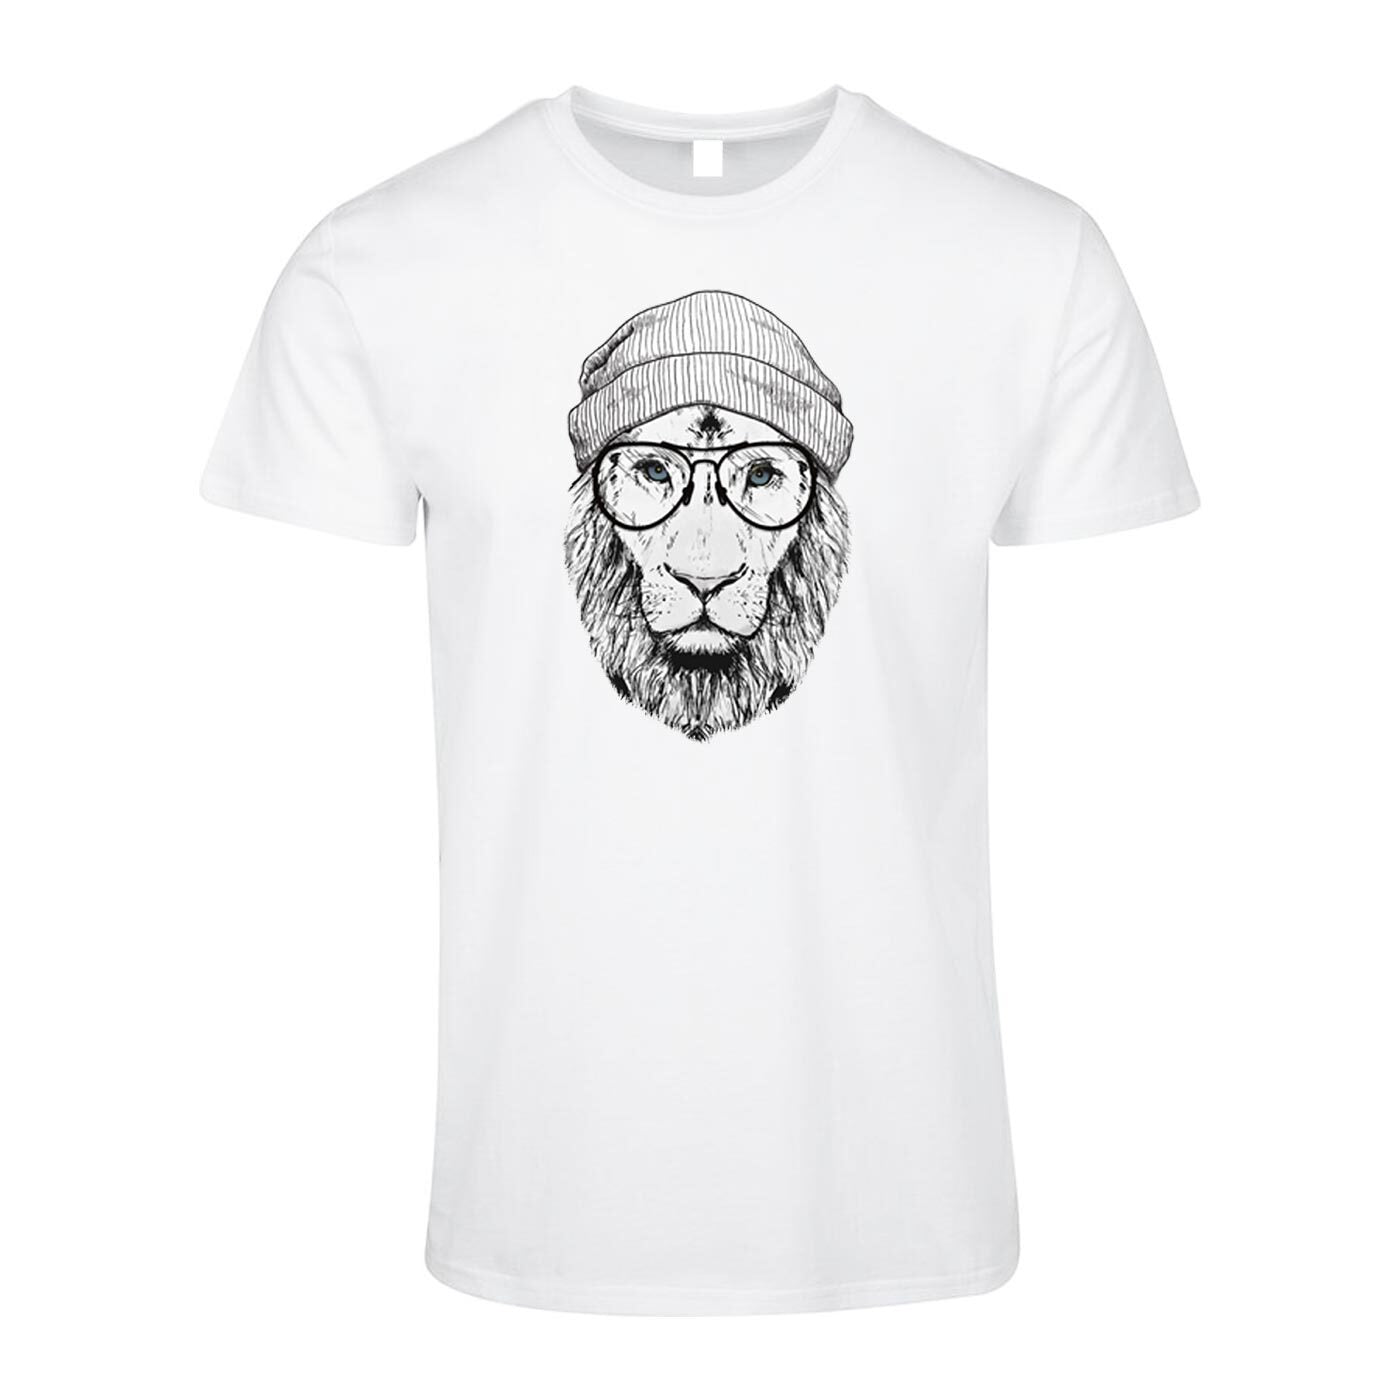 Pologize™ Cool Lion Design T Shirt